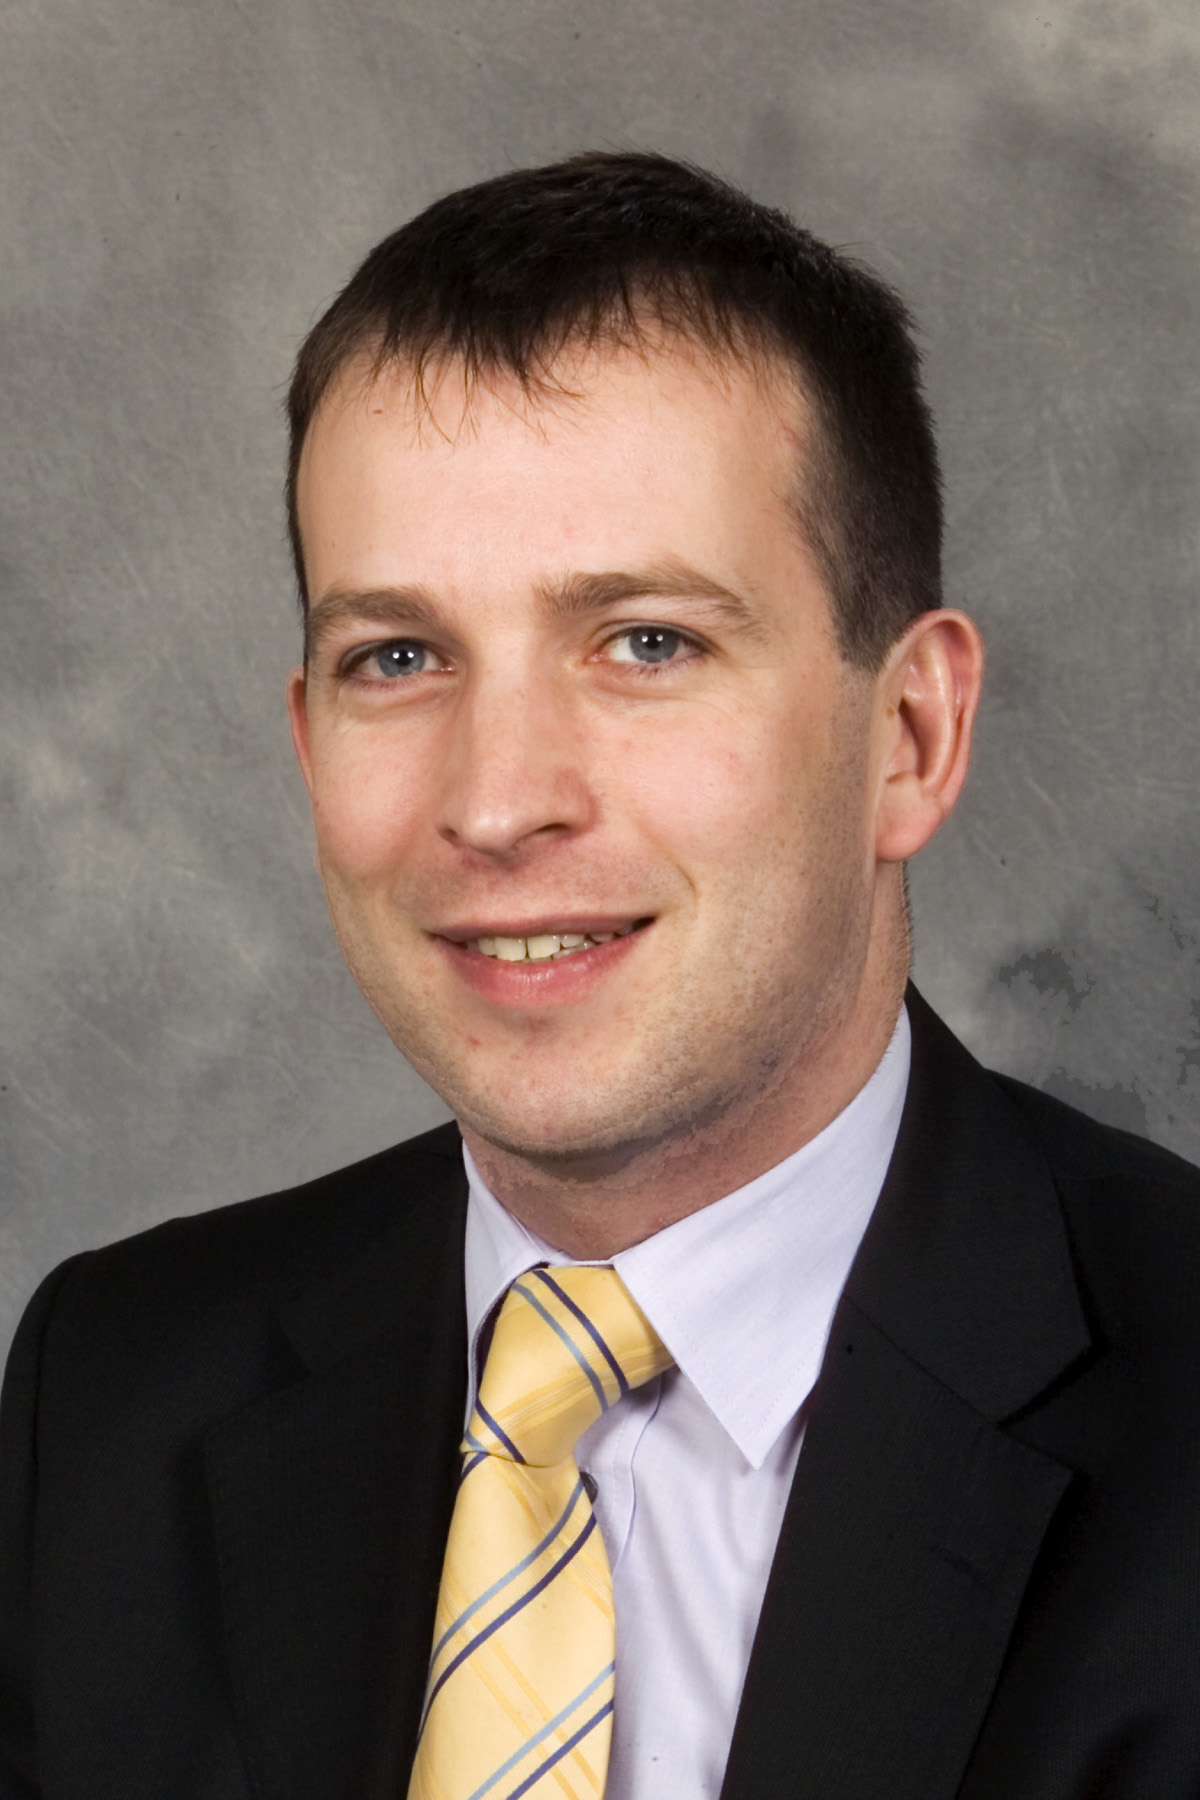 Austin Acheson is a consultant Consultant Colorectal Surgeon at Circle Nottingham